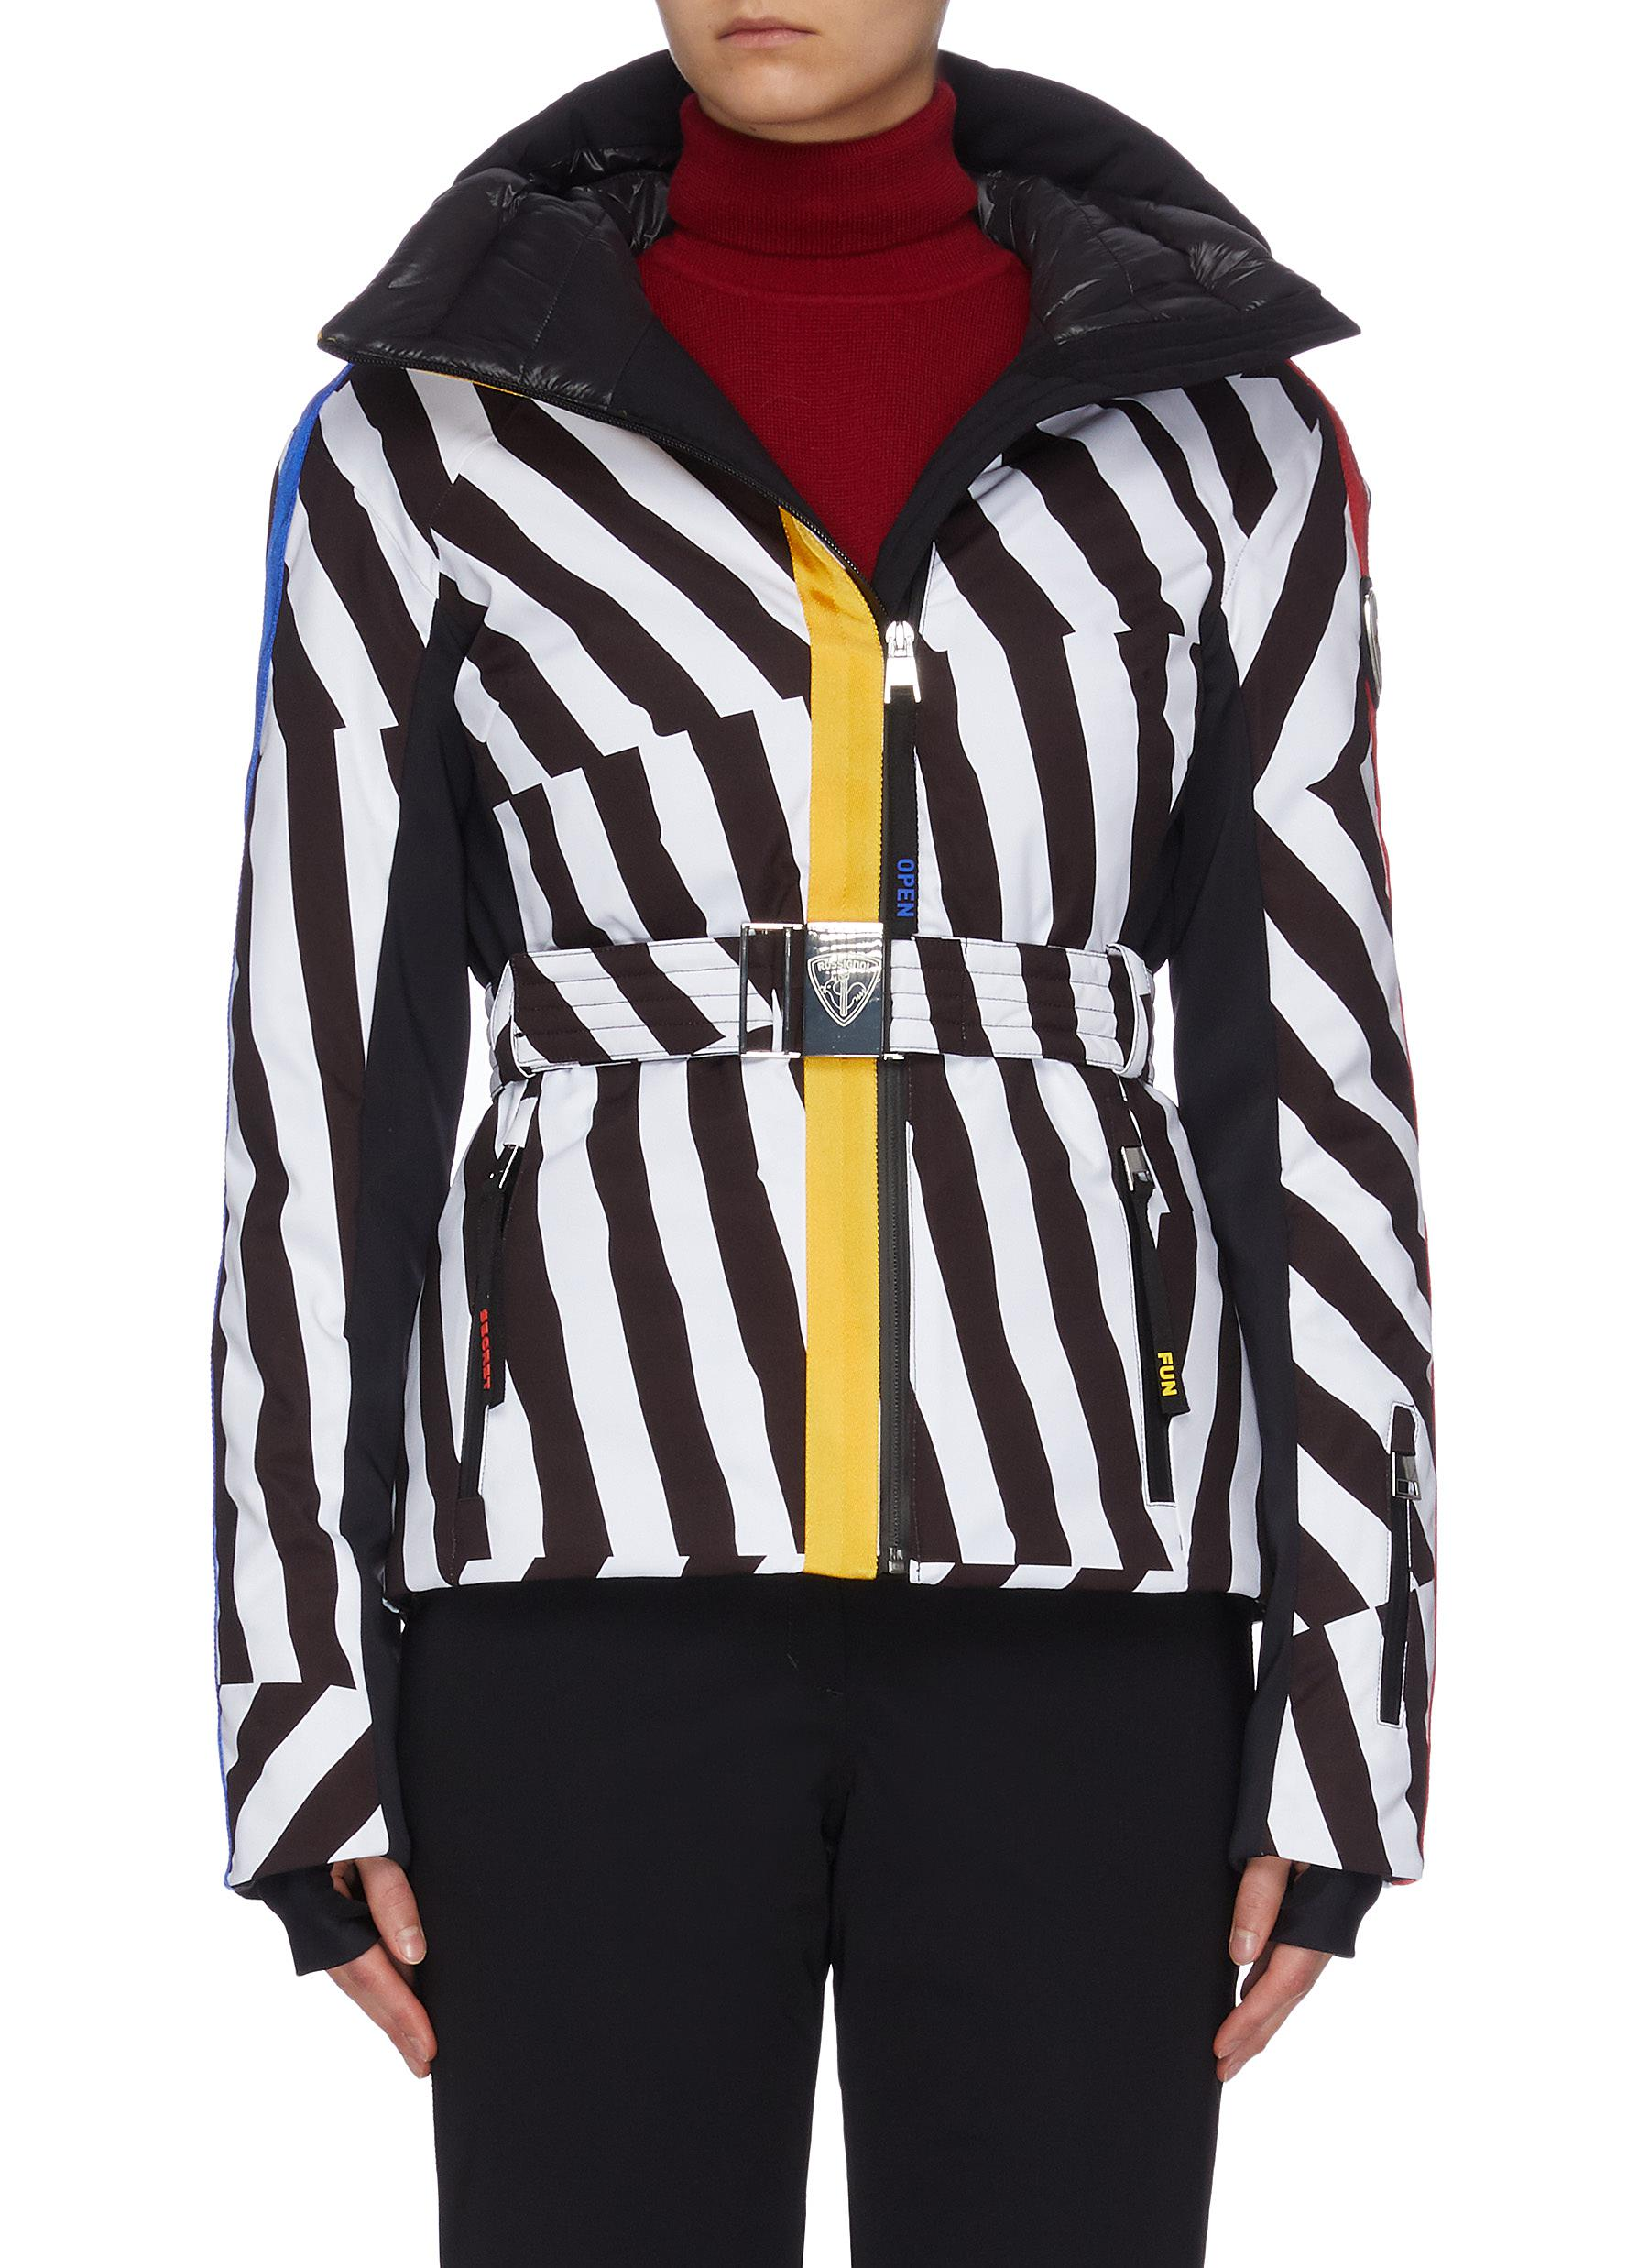 Buy Rossignol Jackets x JCC 'Skifi' graphic print ski jacket